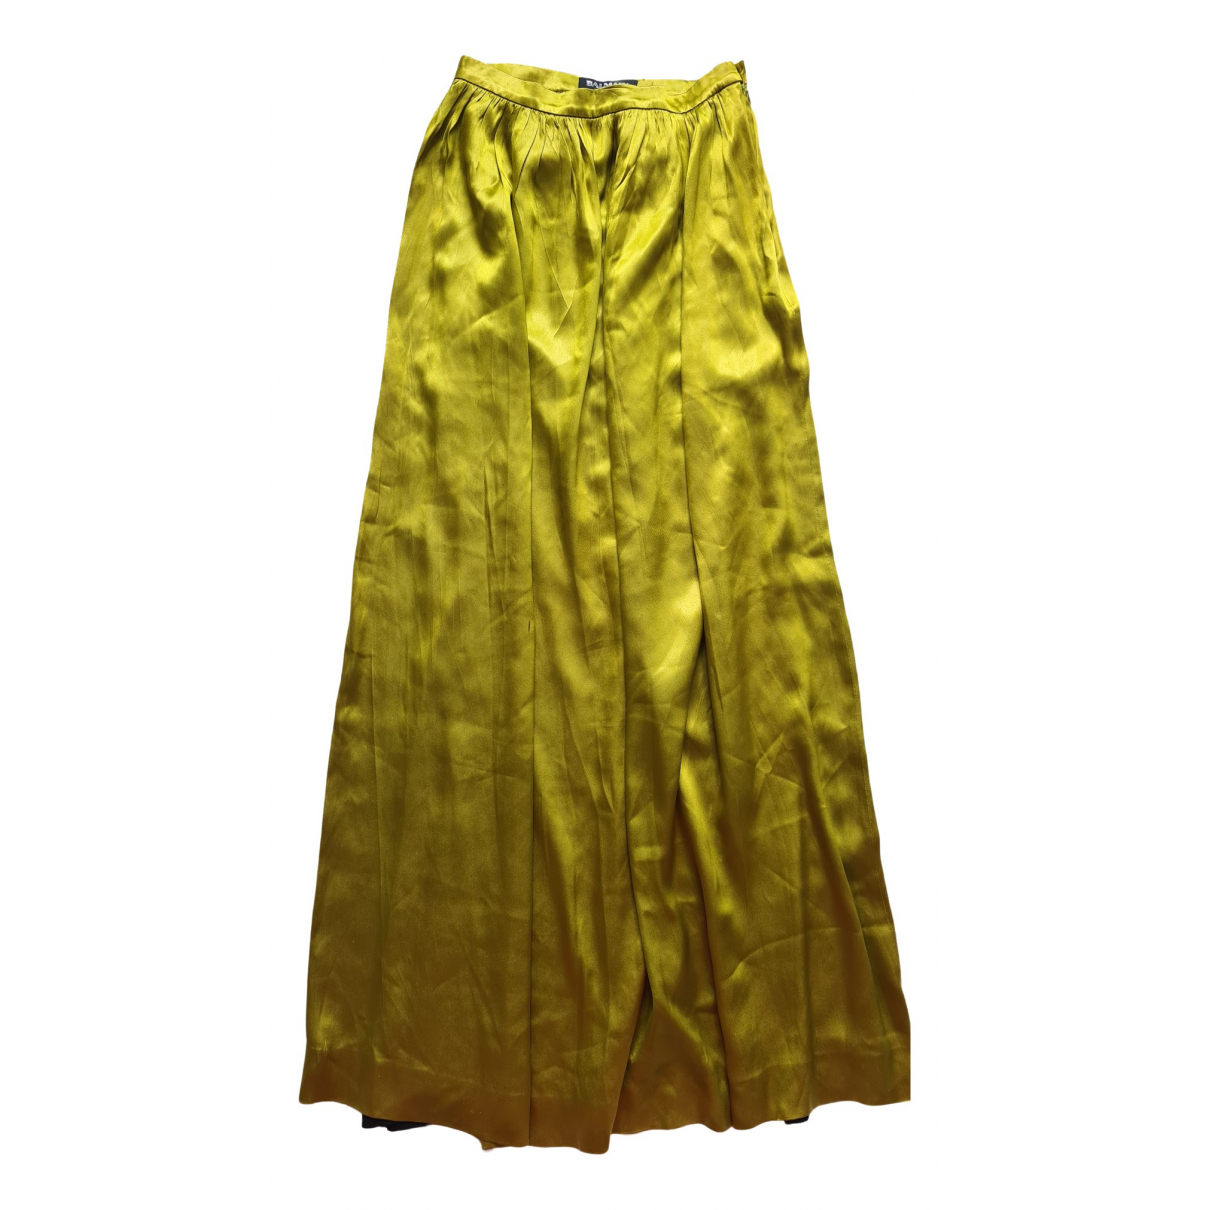 Balmain \N Gold Silk skirt for Women 38 FR